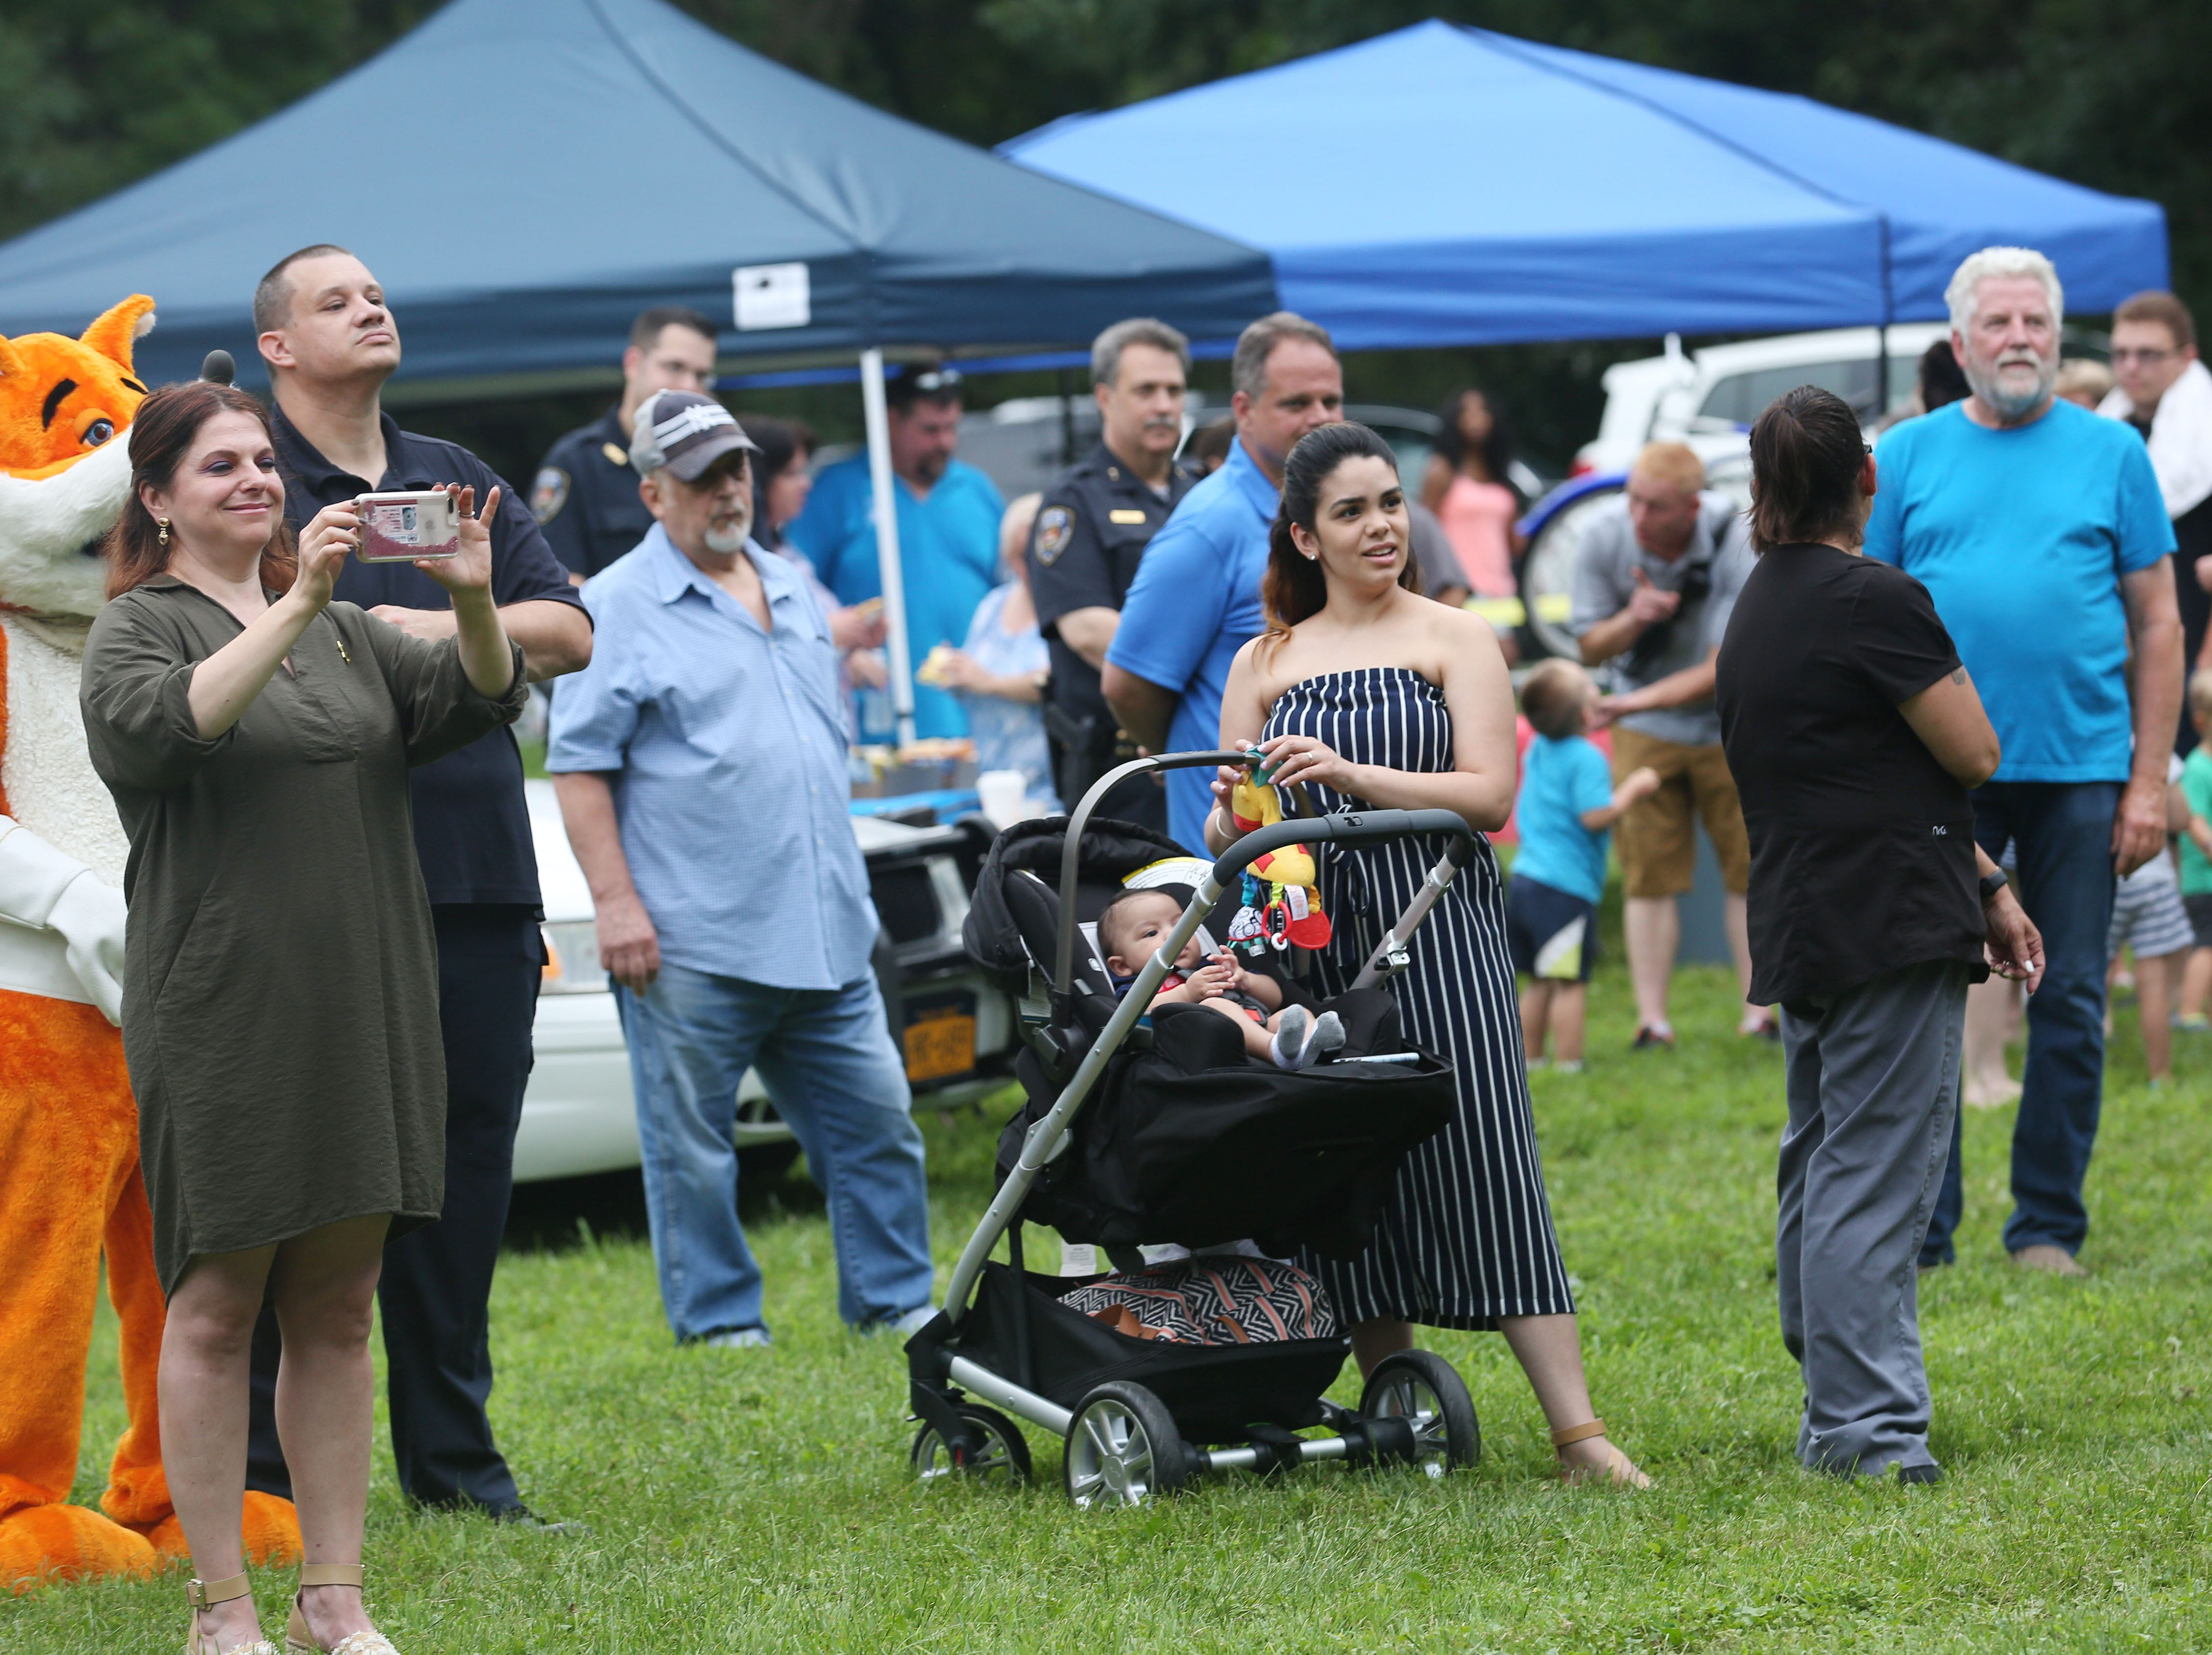 Residents of Putnam Lake enjoy the annual National Night Out at Memorial Field in Putnam Lake Aug. 7, 2018. The event is sponsored by the Putnam Lake Neighborhood Association and Putnam Lake Park District.